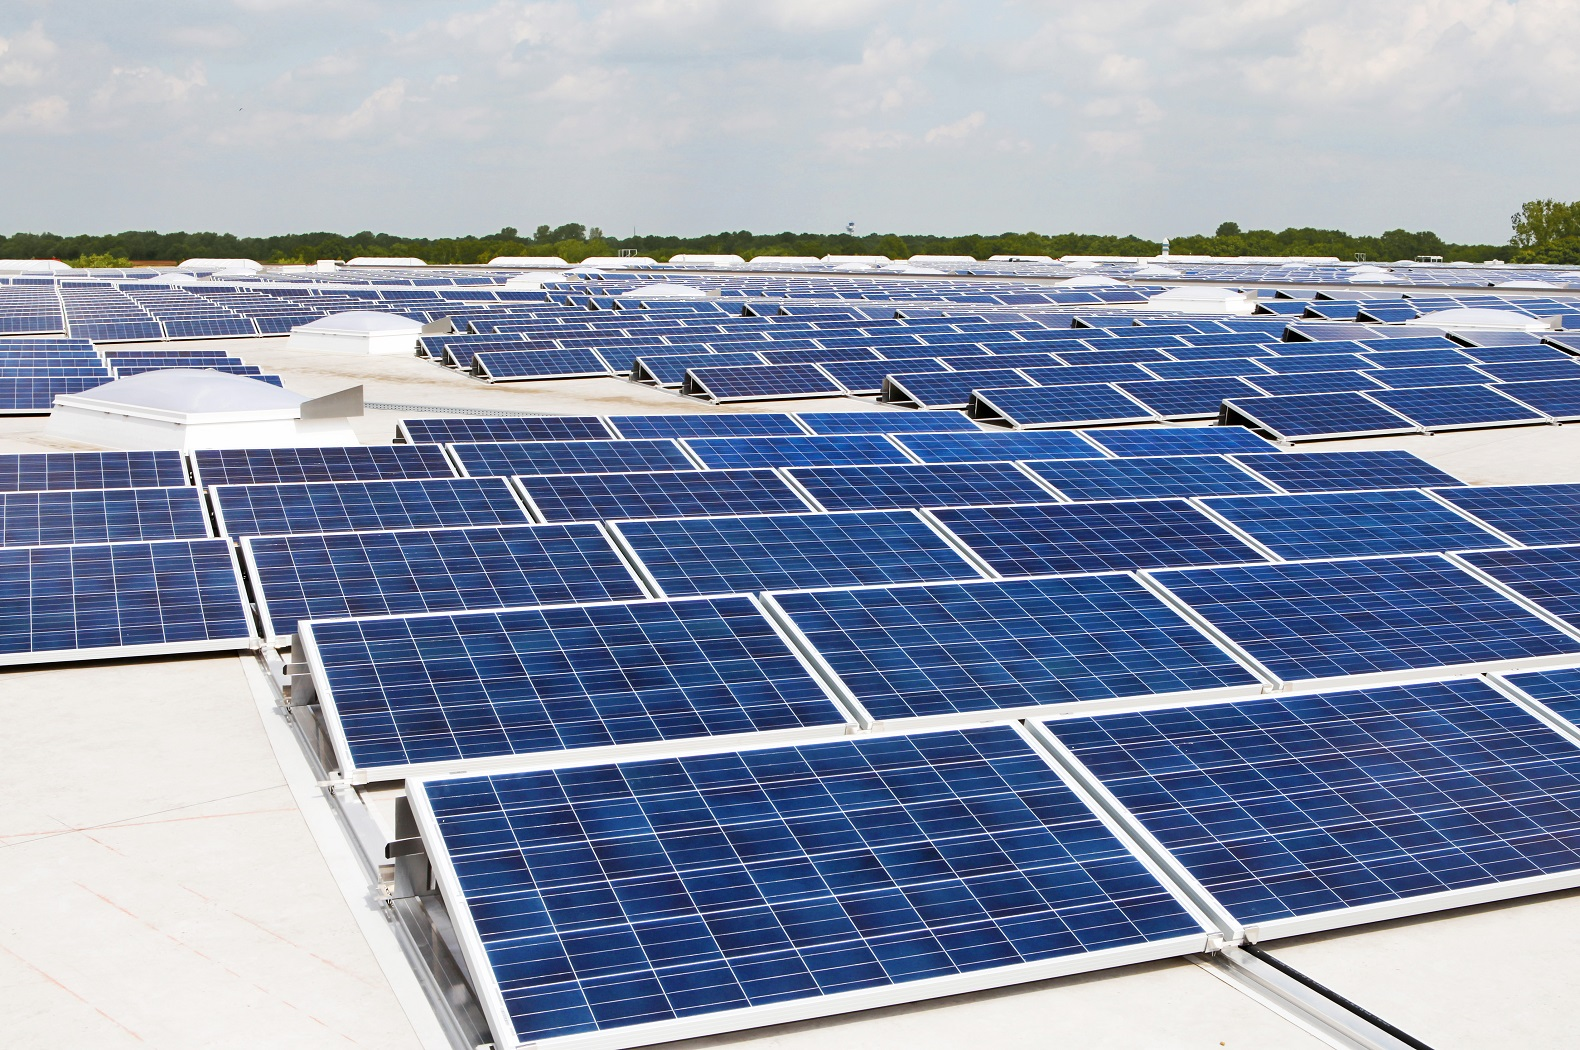 The cost of solar power has fallen 25% in just five months